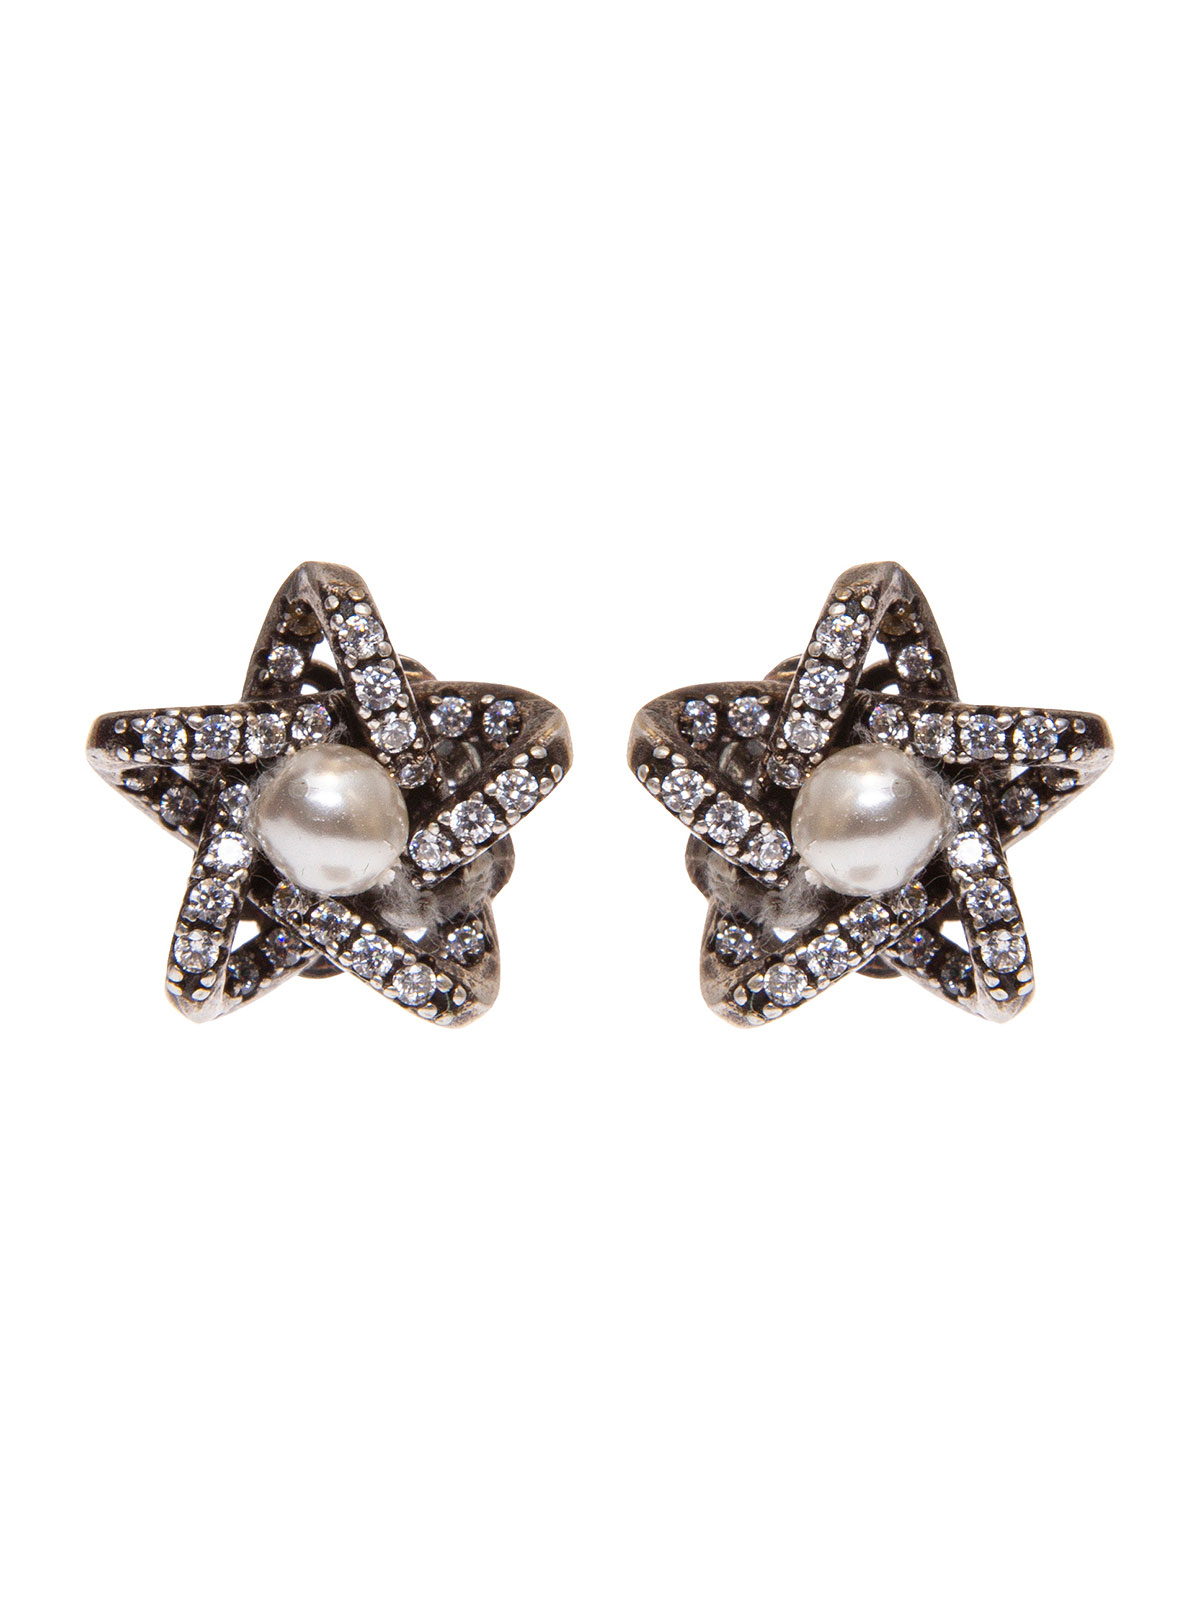 Star earrings with central pearl